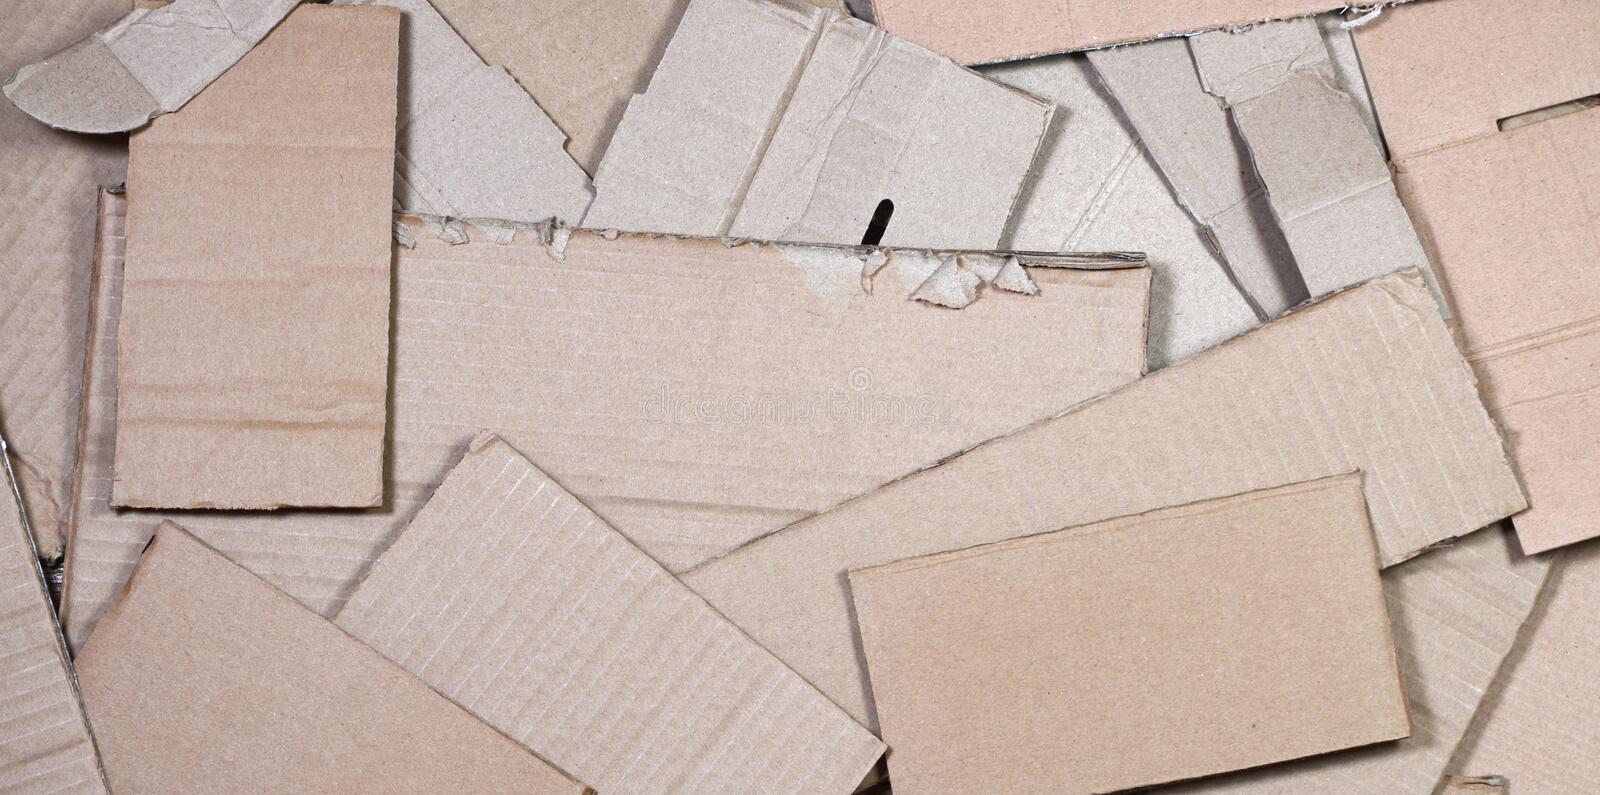 Background of paper textures piled ready to recycle. A pack of old office cardboard for recycling of waste paper. Pile of royalty free stock photos